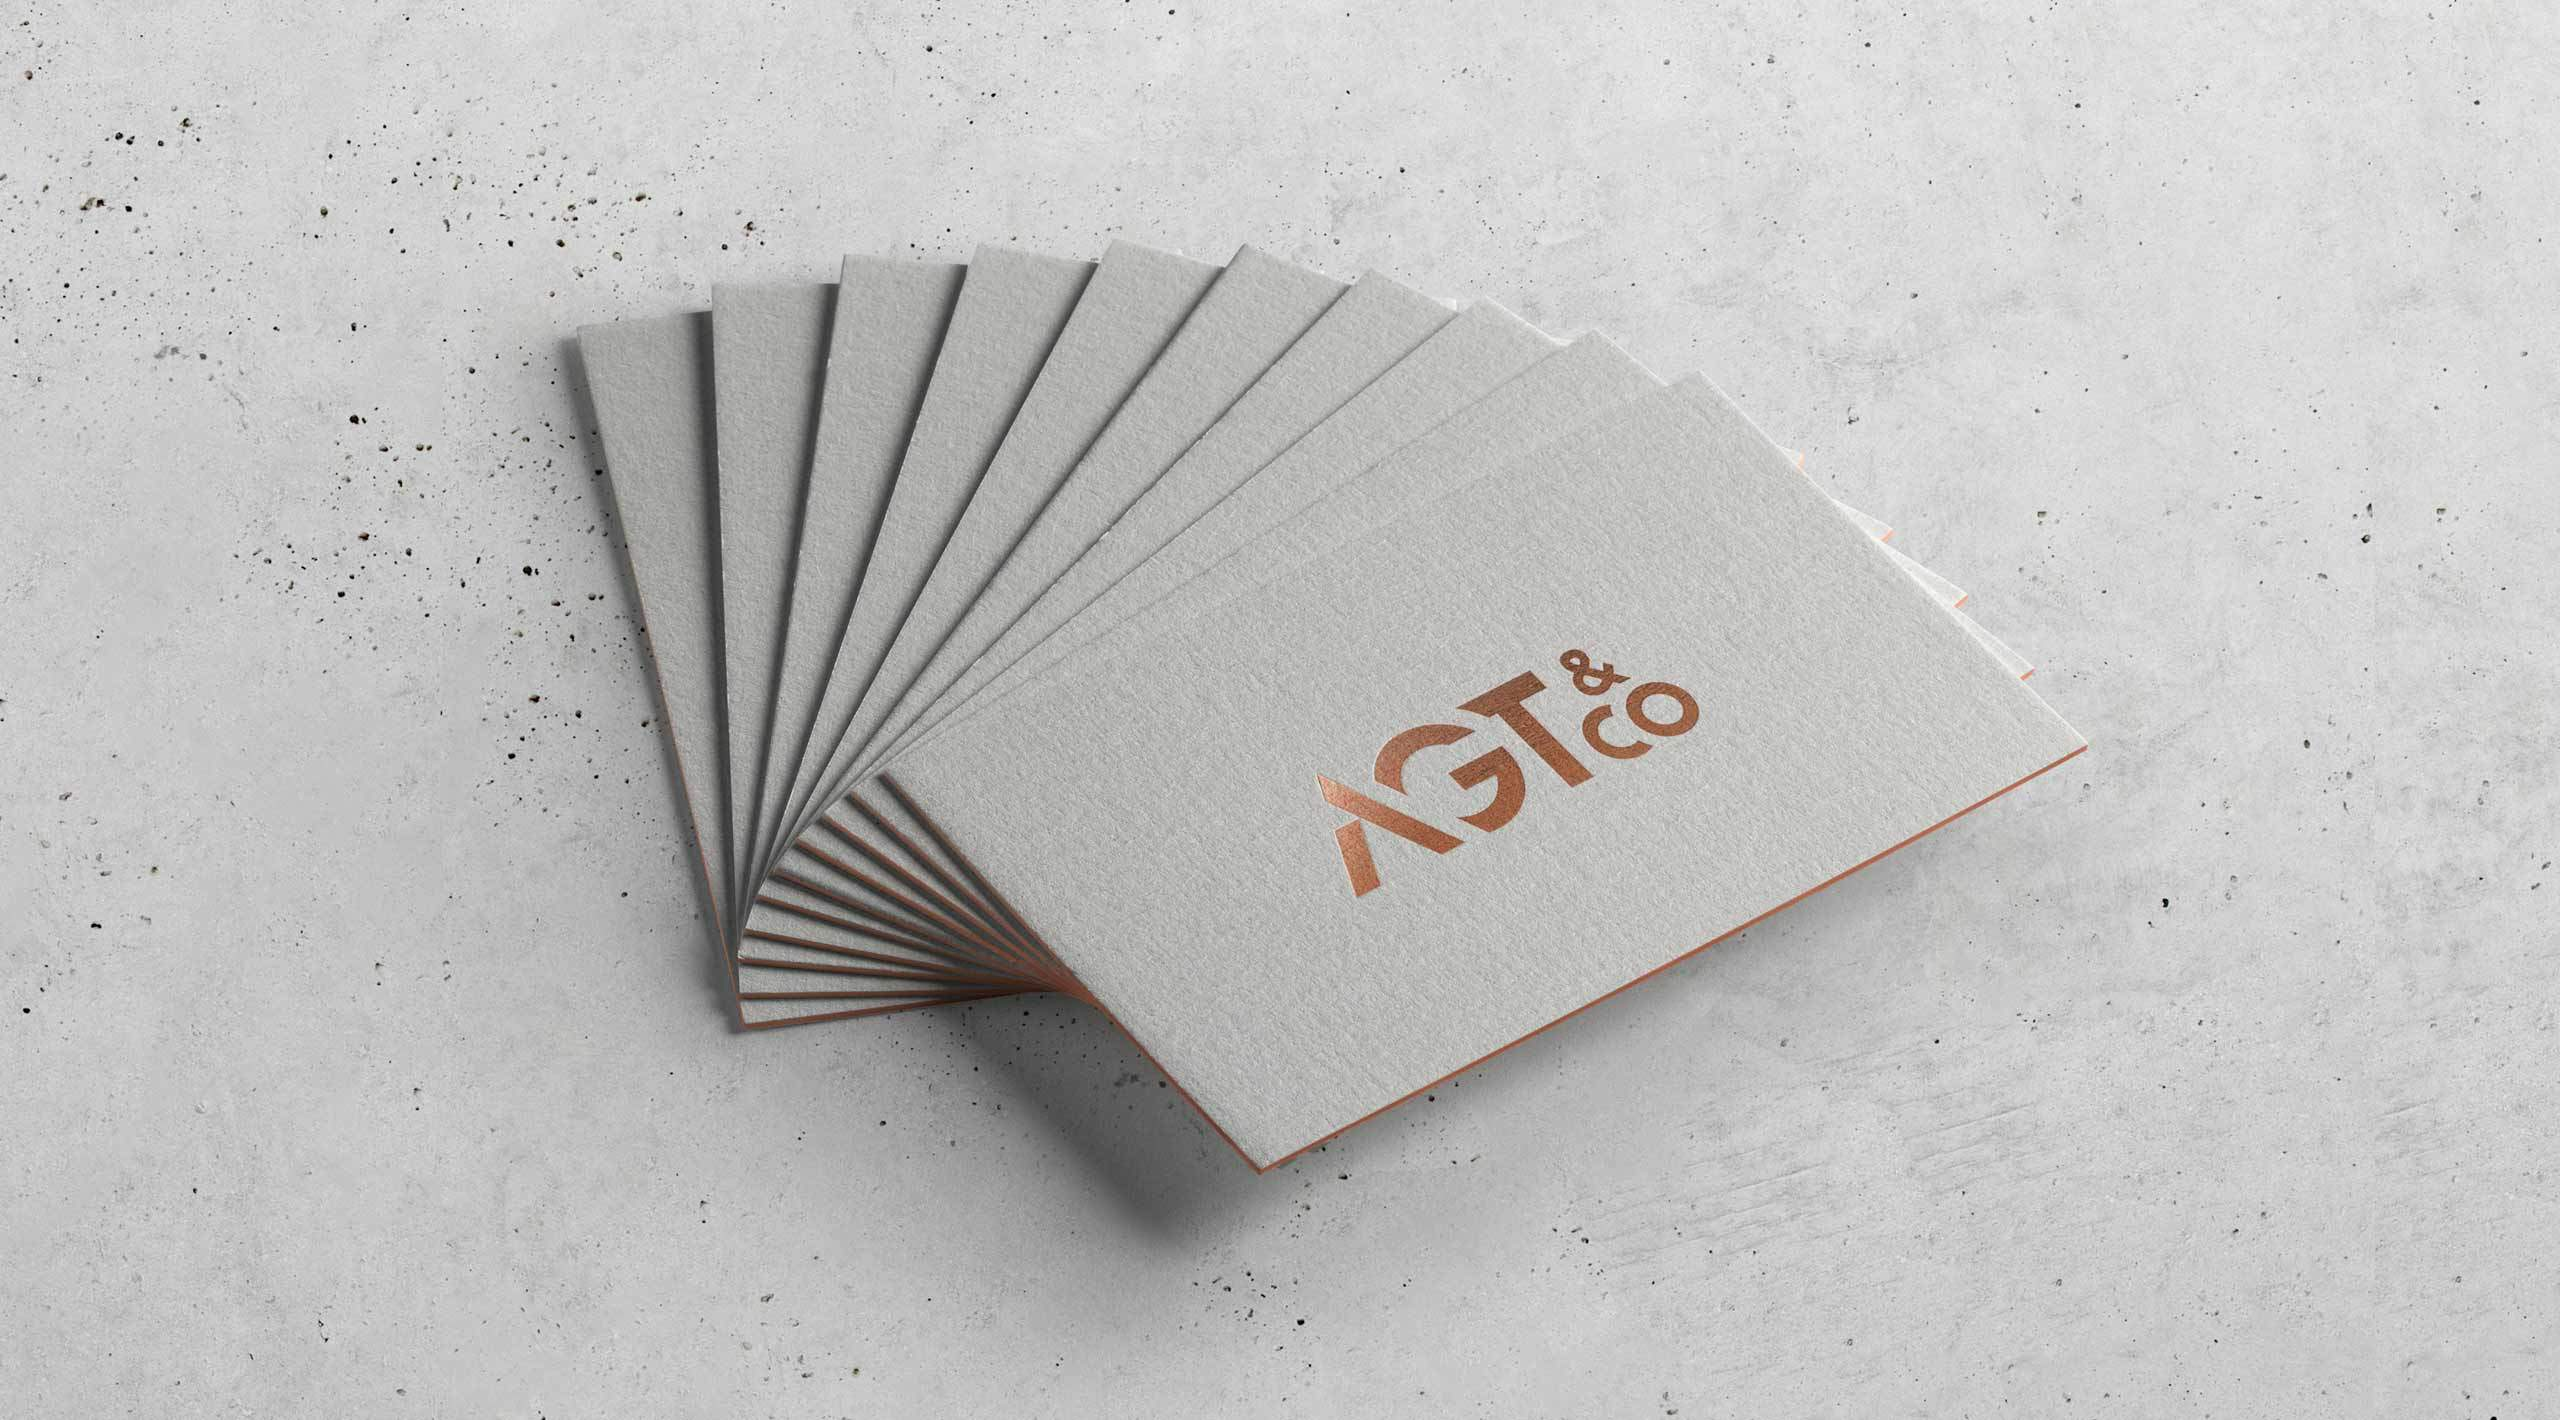 agt-co-copper-business-cards-on-concrete